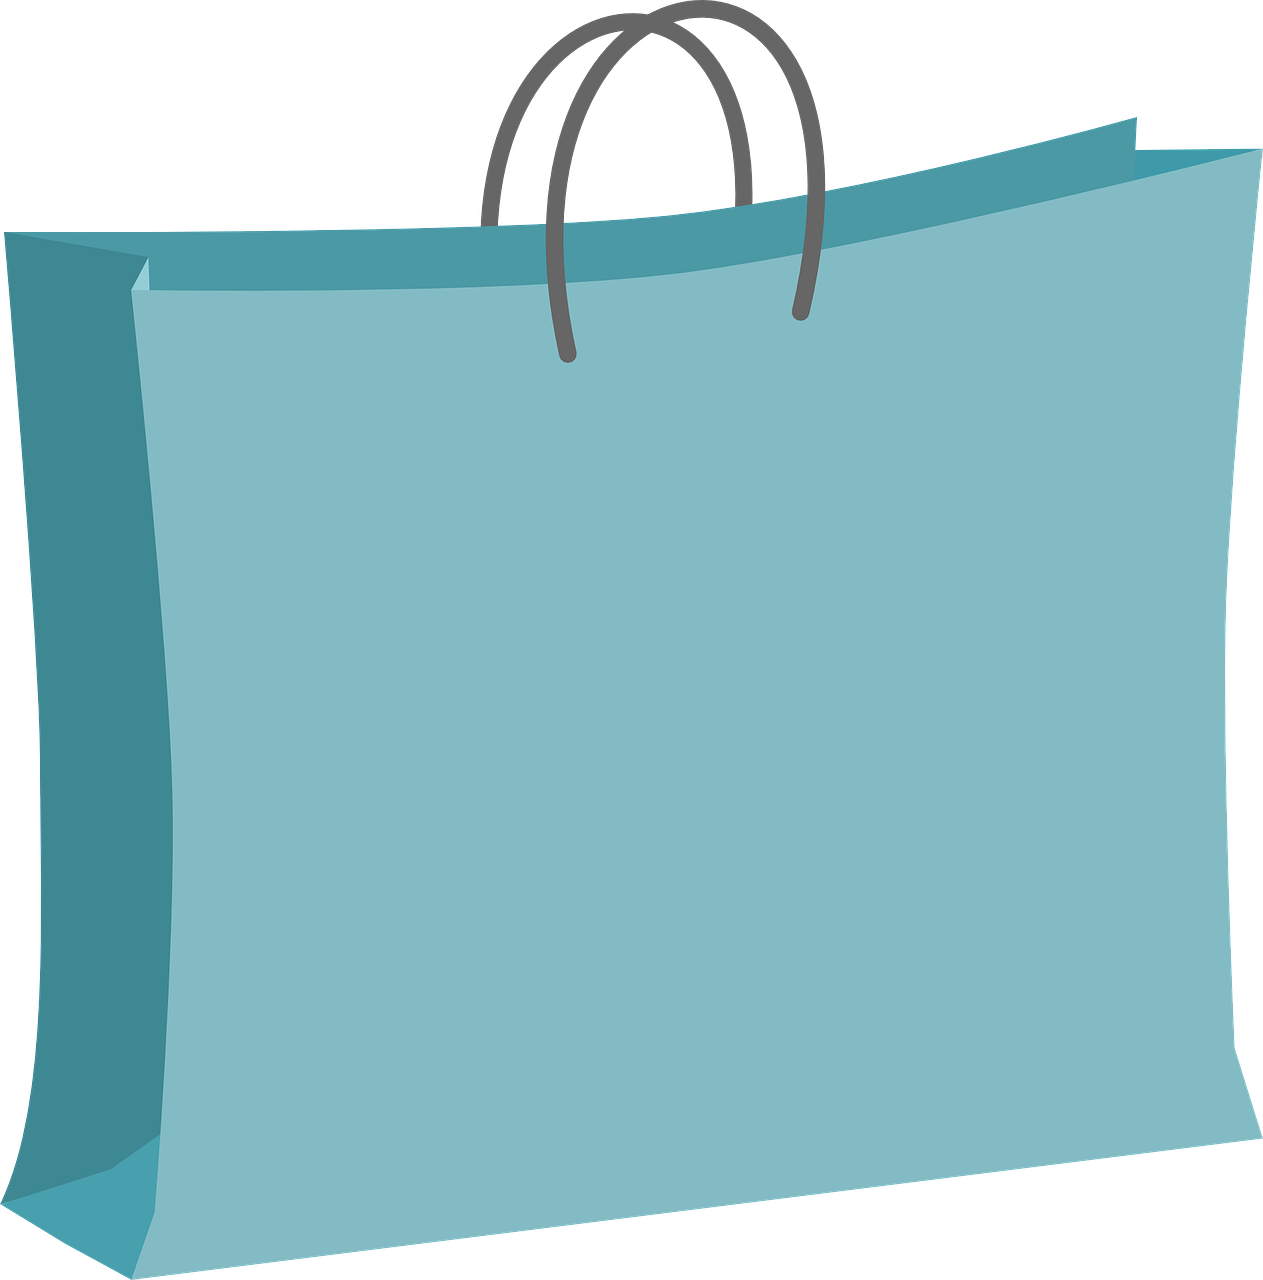 this clip art of an orange shopping basket is free for personal or rh pinterest com au shopping bags clipart black and white shopping bags clipart black and white